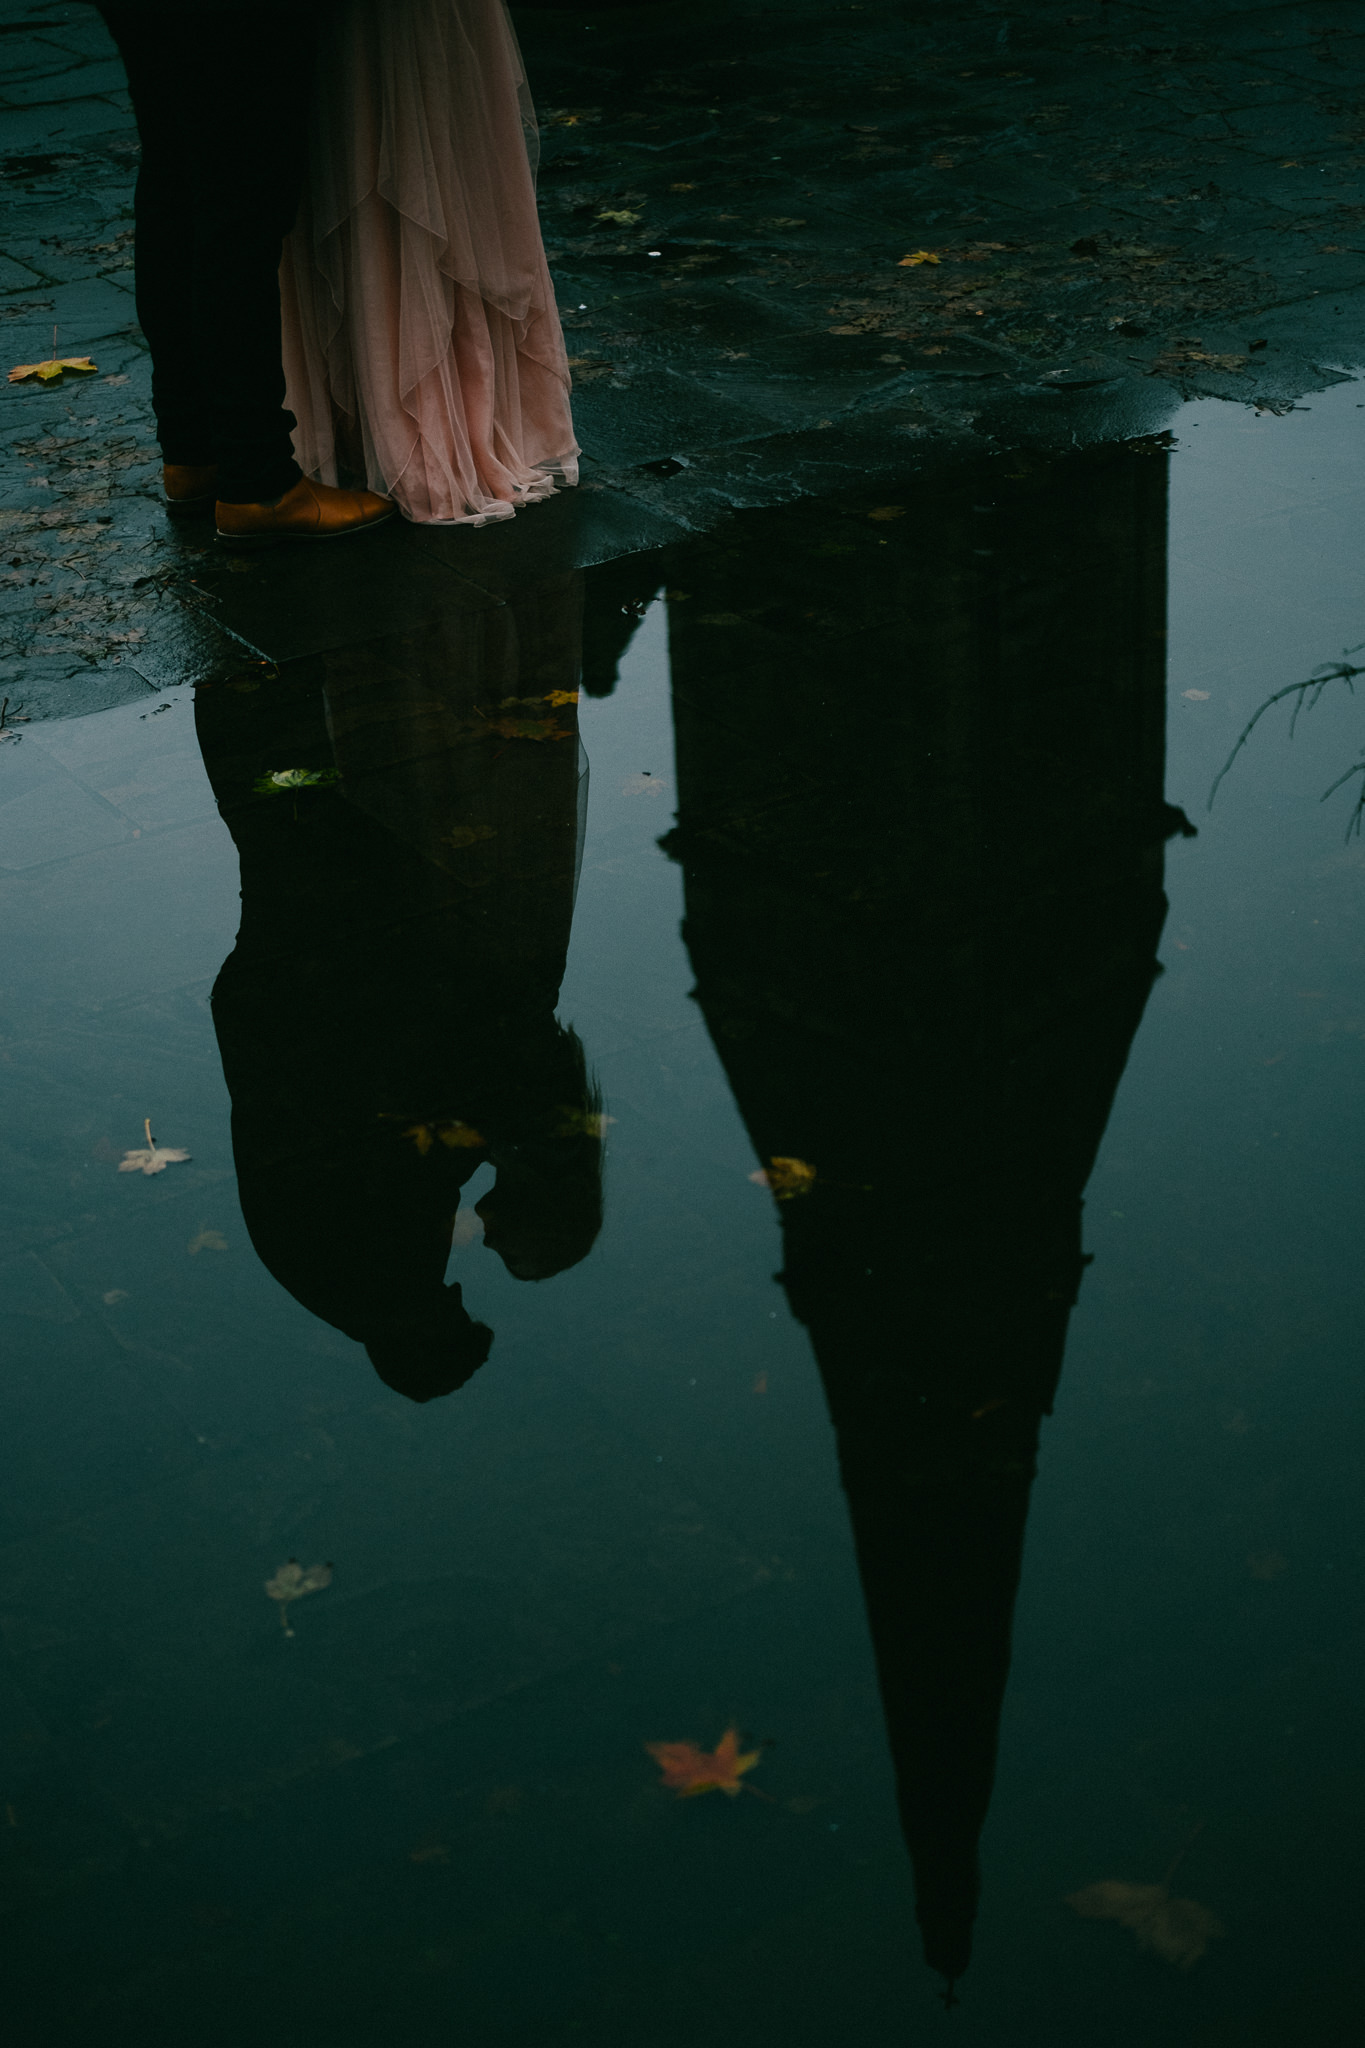 Reflection in a puddle of an engaged couple embracing with a church steeple in the background